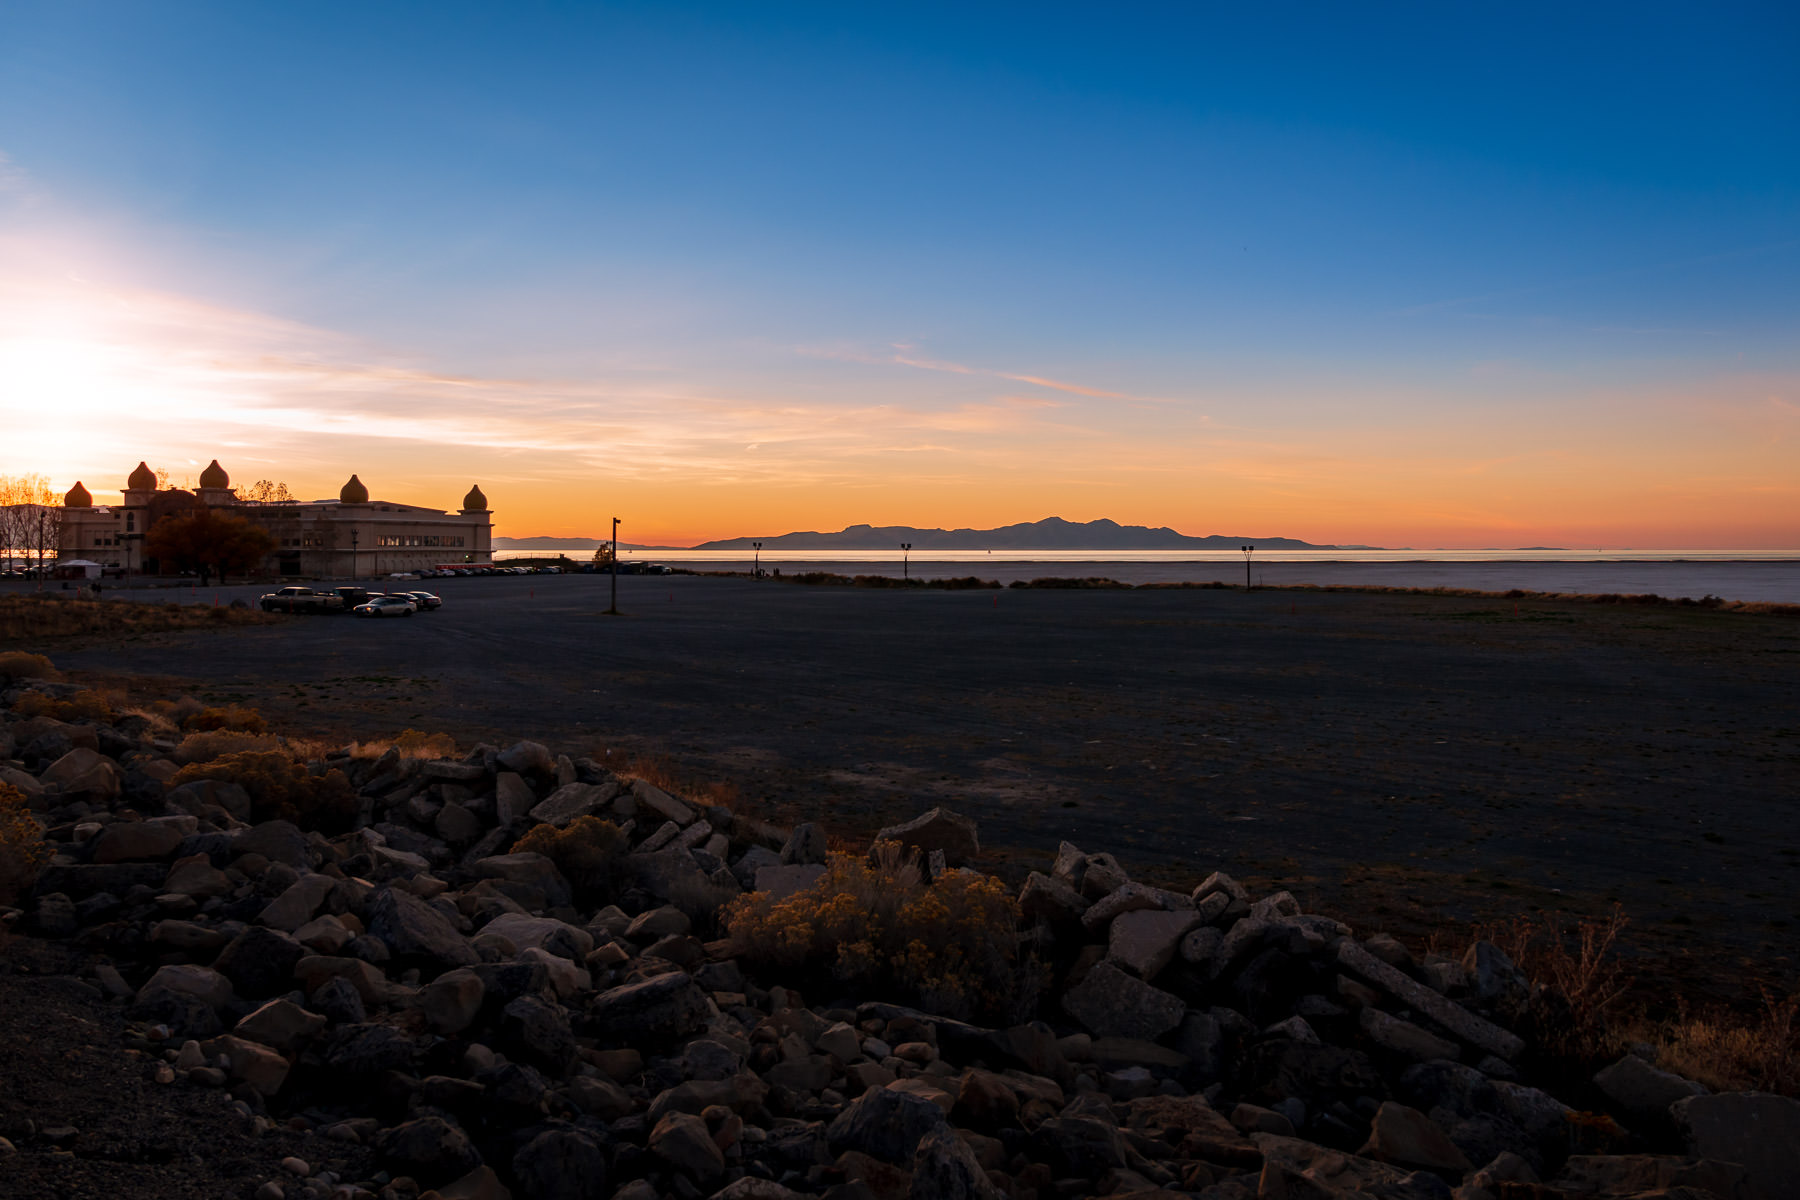 The sun sets on the Saltair concert venue along the southern shore of Utah's Great Salt Lake near Tooele.